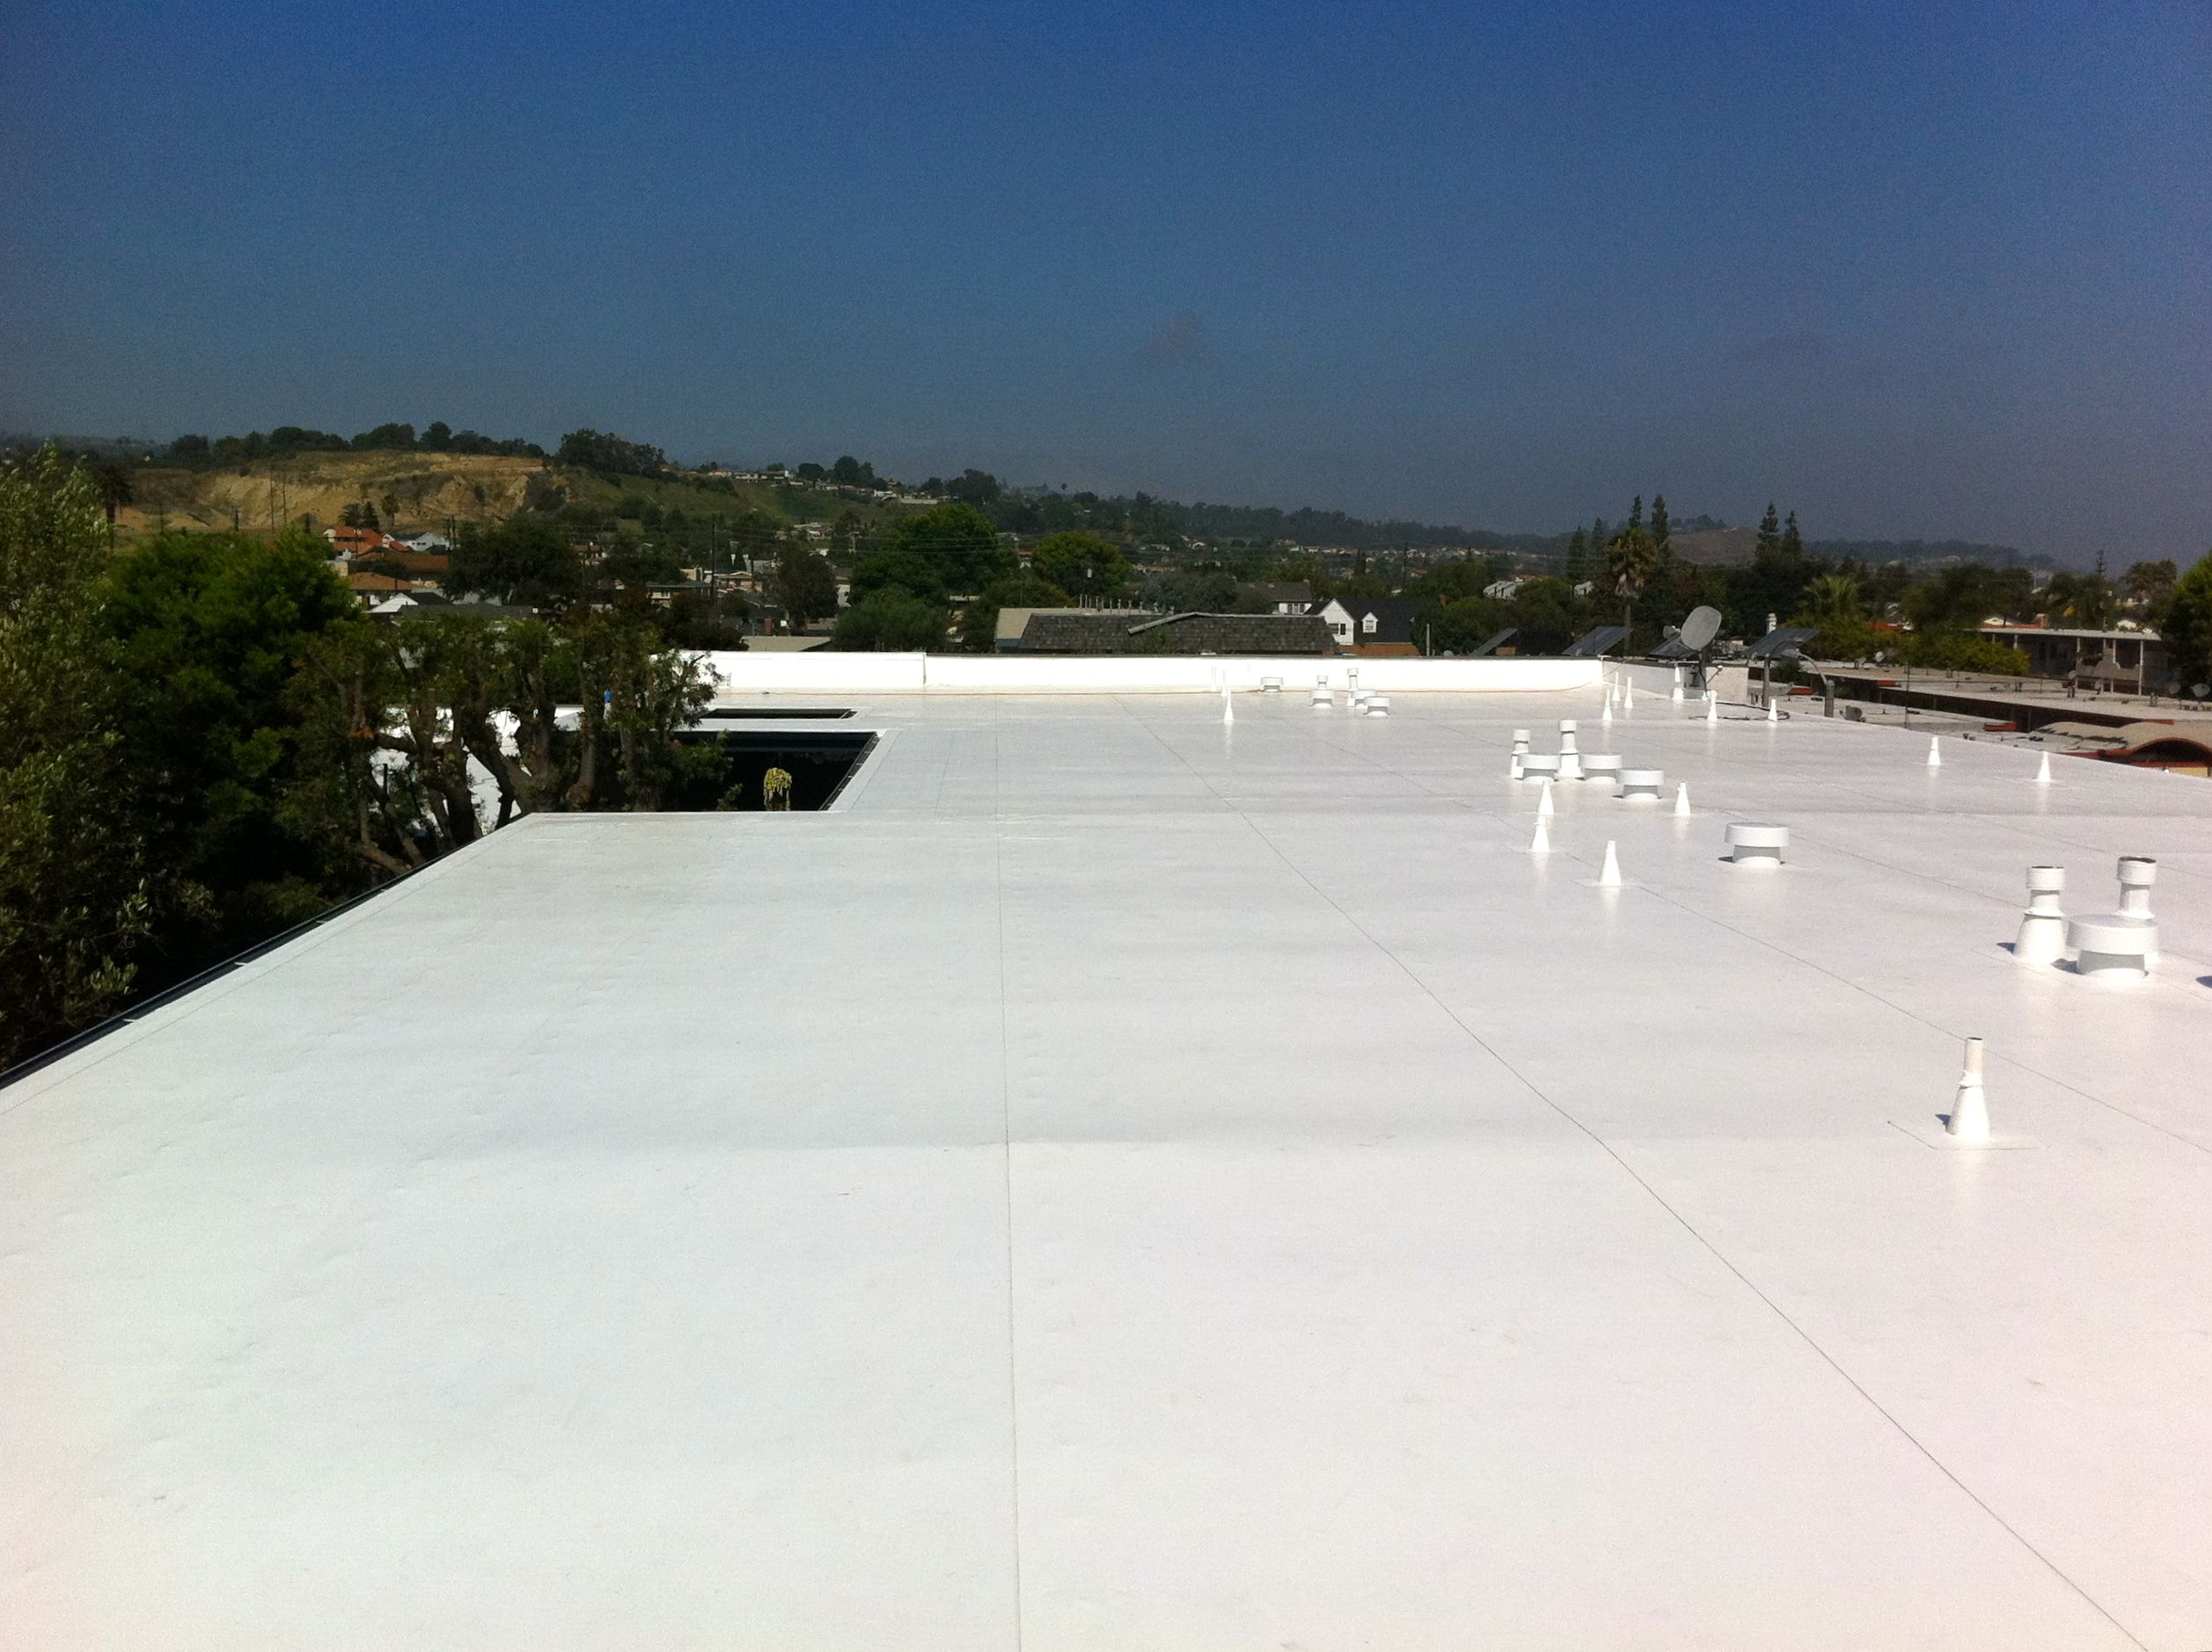 Pin On Chandler S Ib Roofs